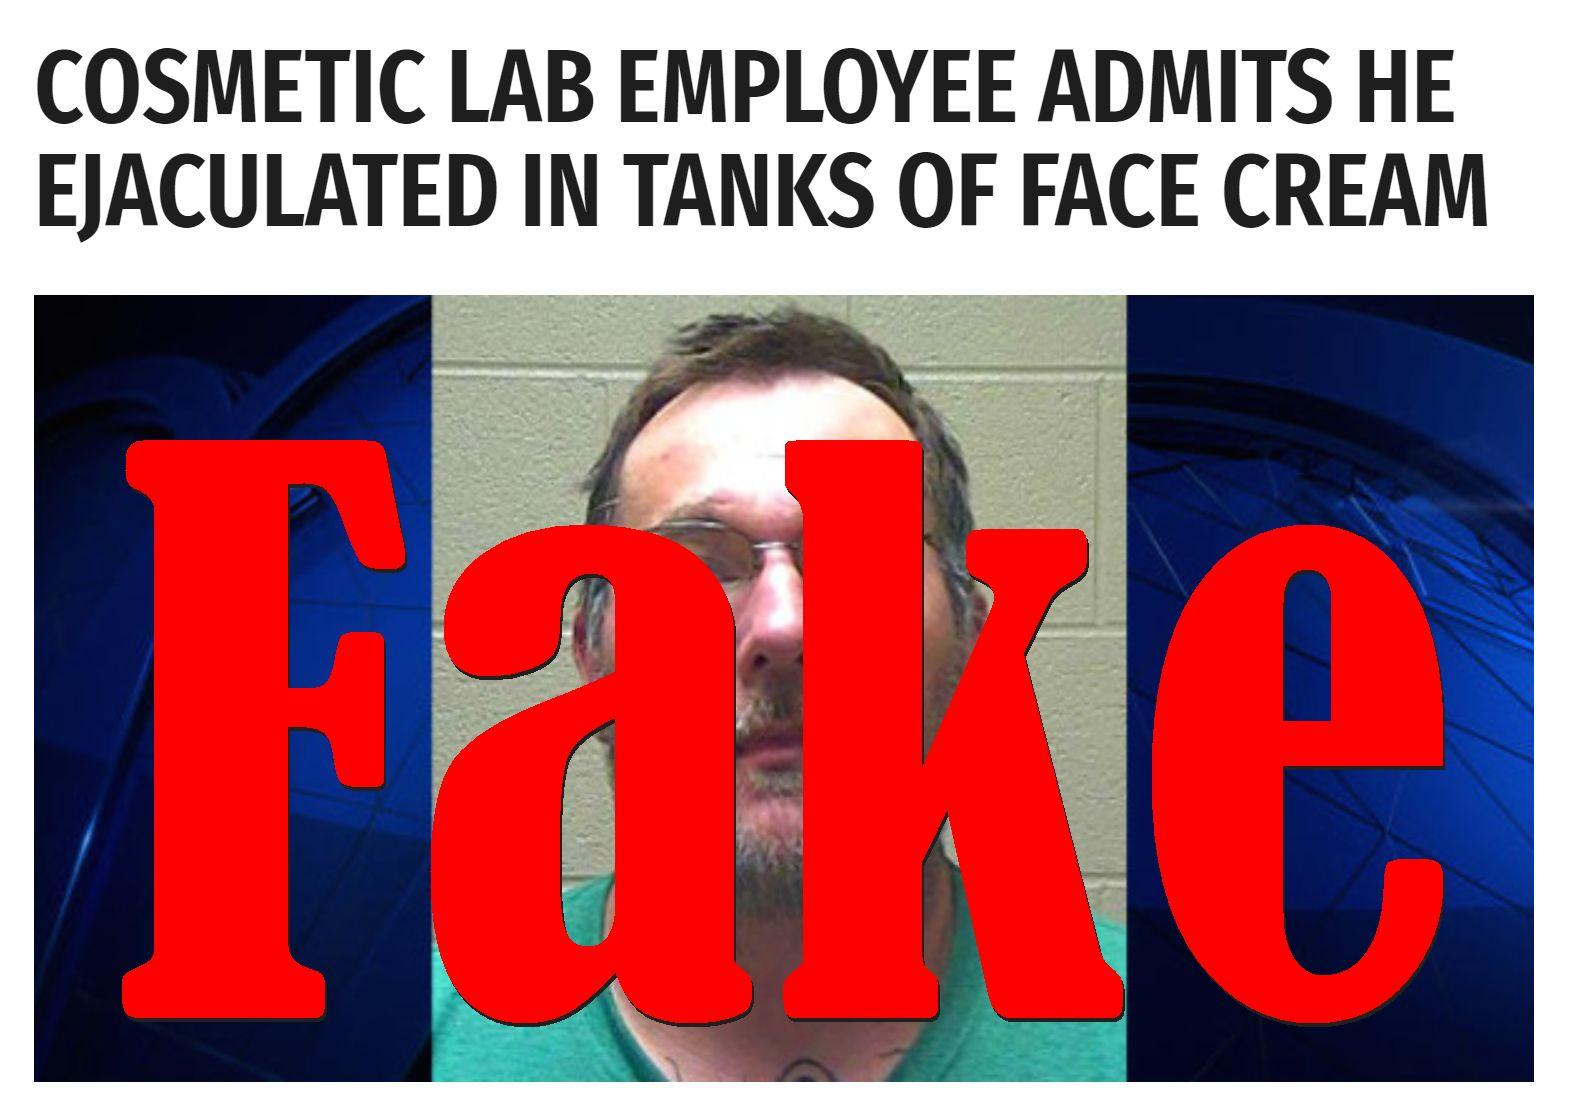 Fake News: Cosmetic Lab Employee Did NOT Admit He Ejaculated In Tanks Of Face Cream